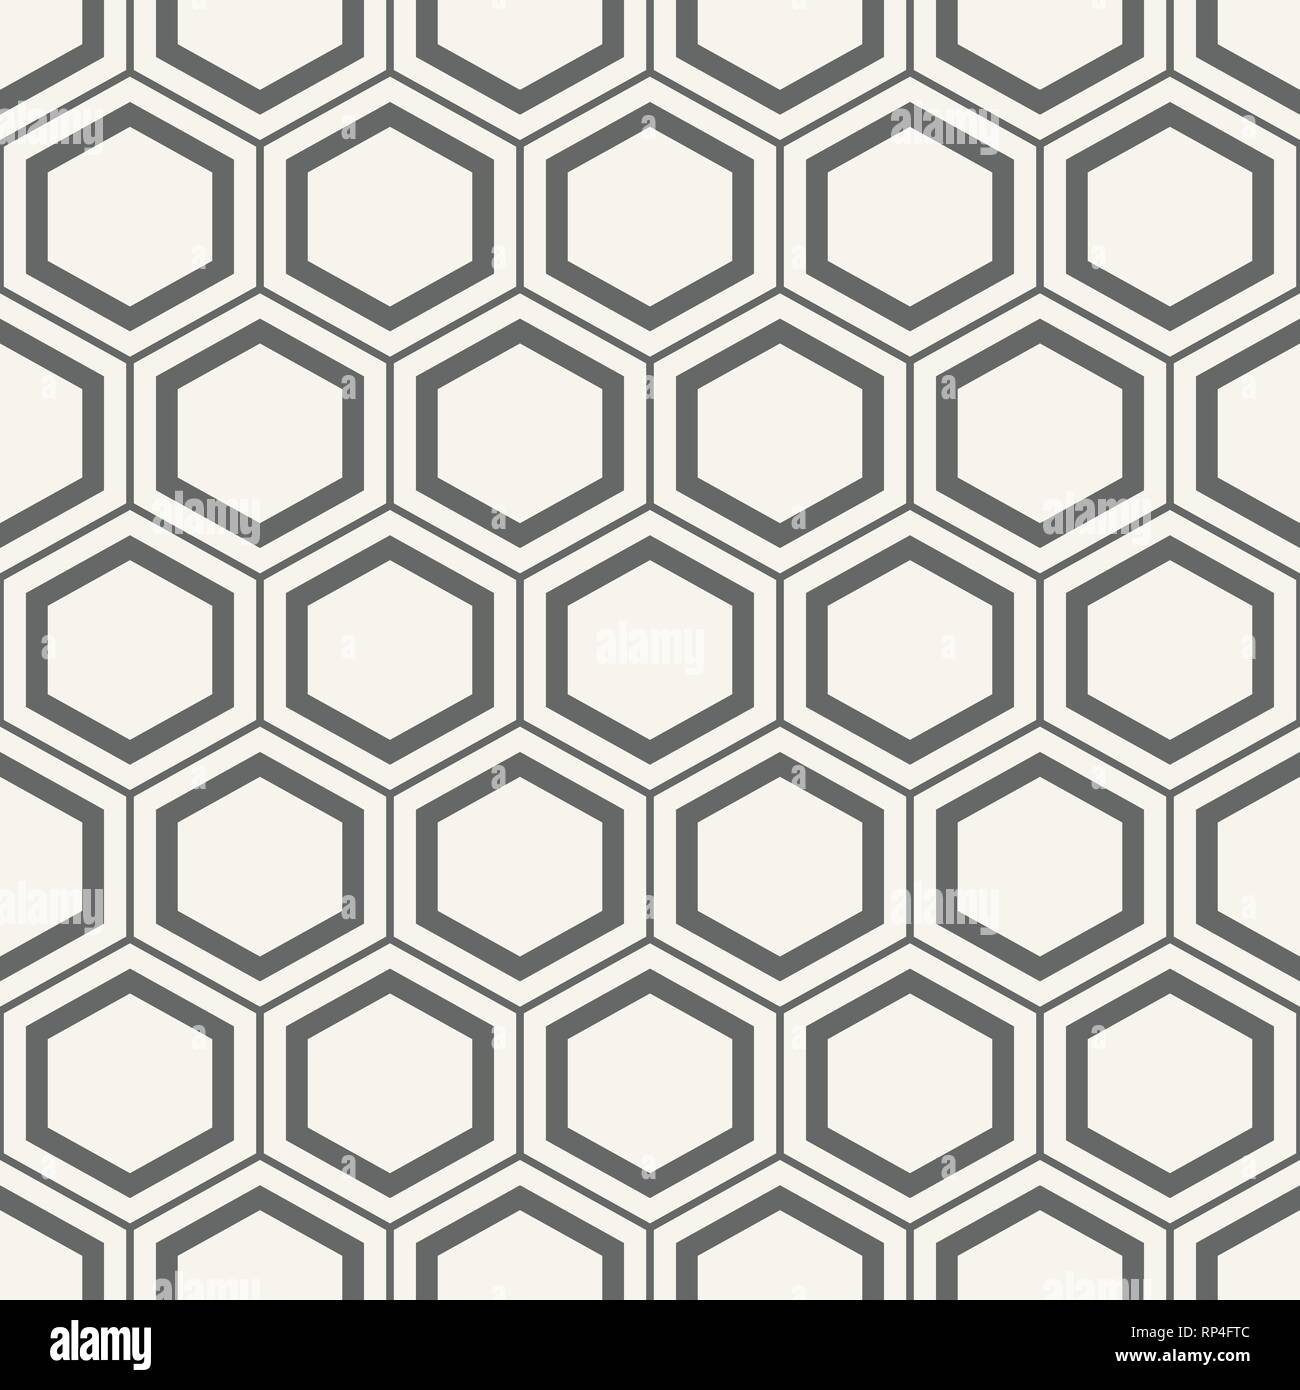 Seamless Geometric Abstract Pattern Of Hexagons Fashion